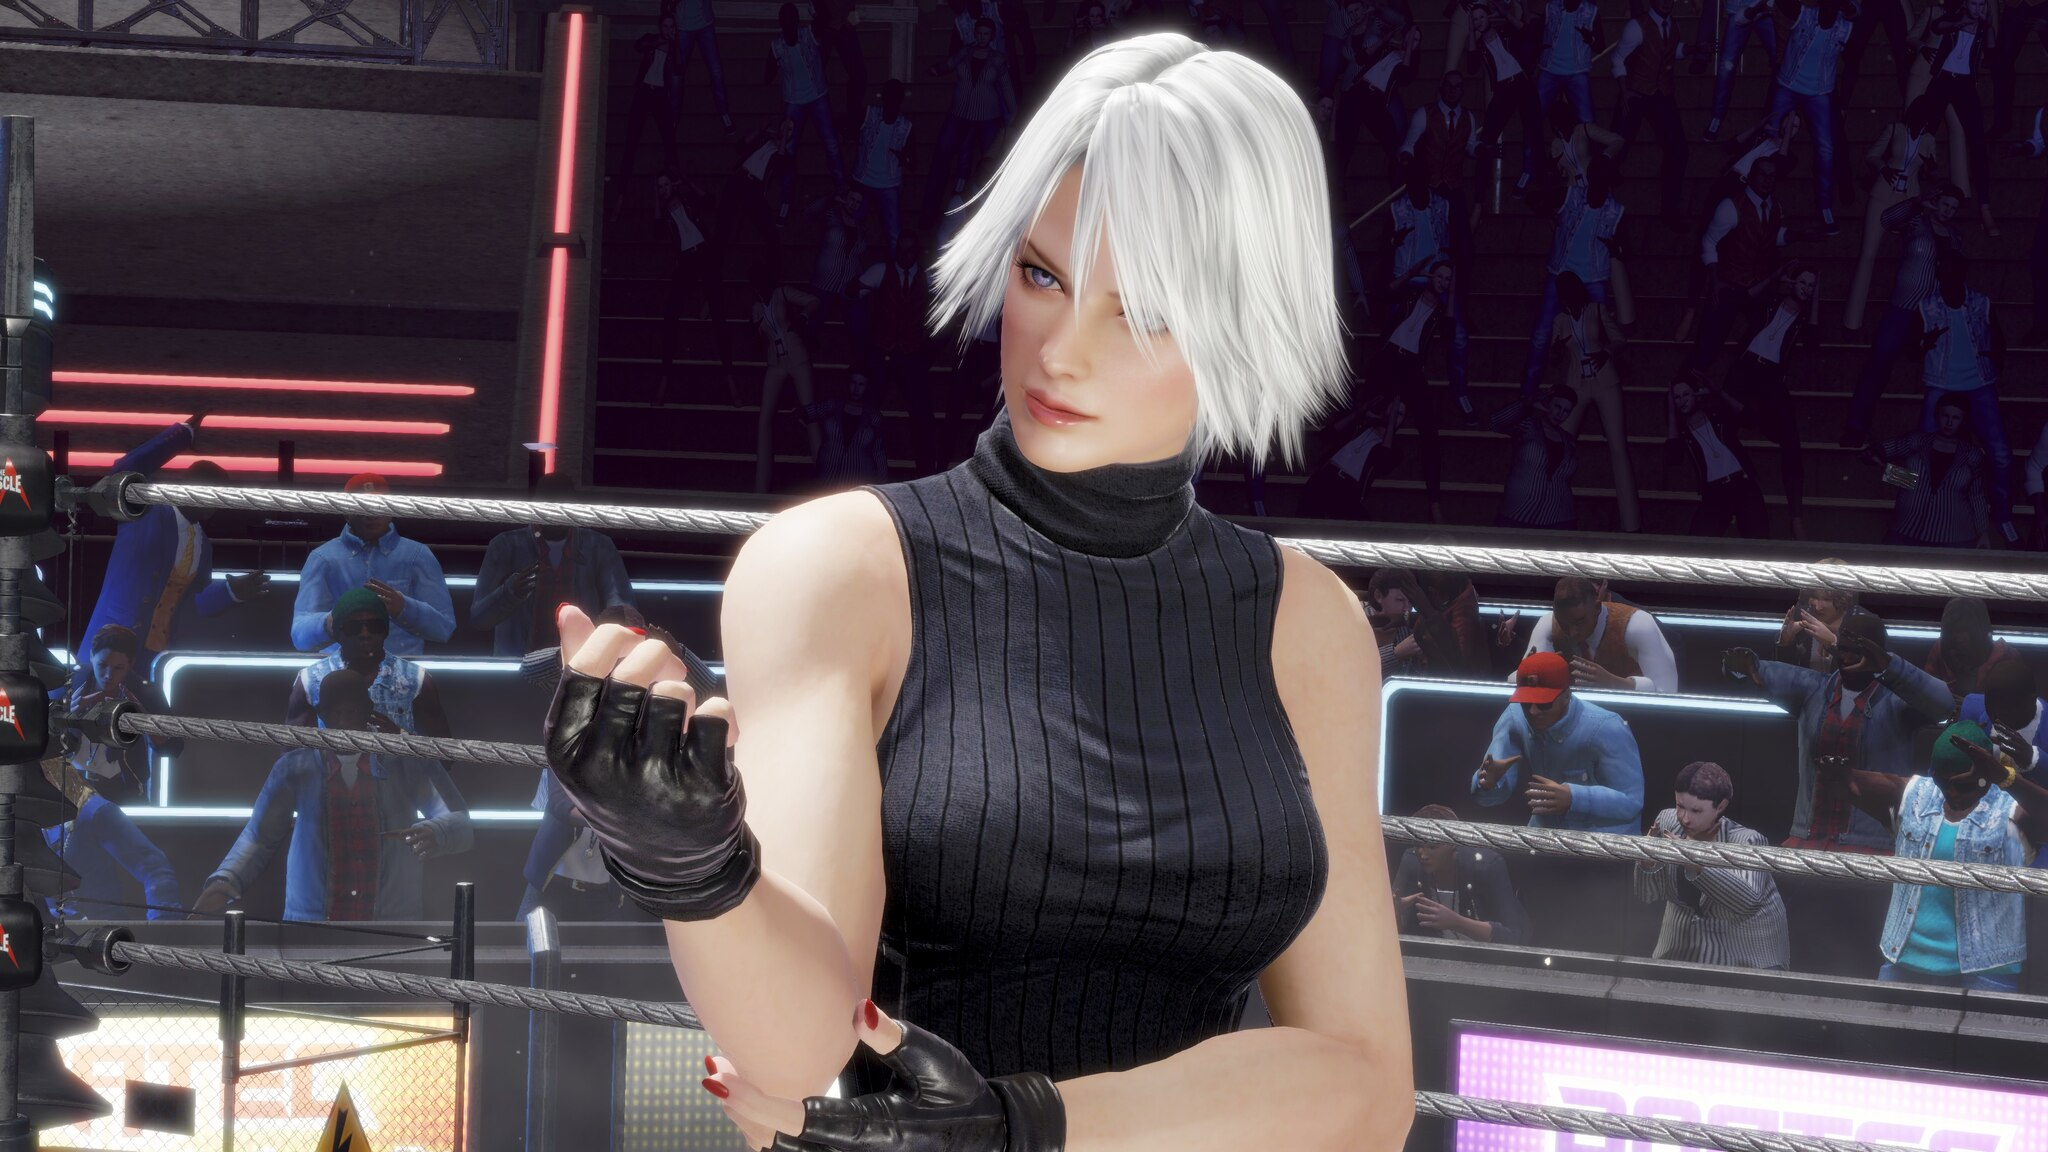 thdgfc.jpg - Dead or Alive 6